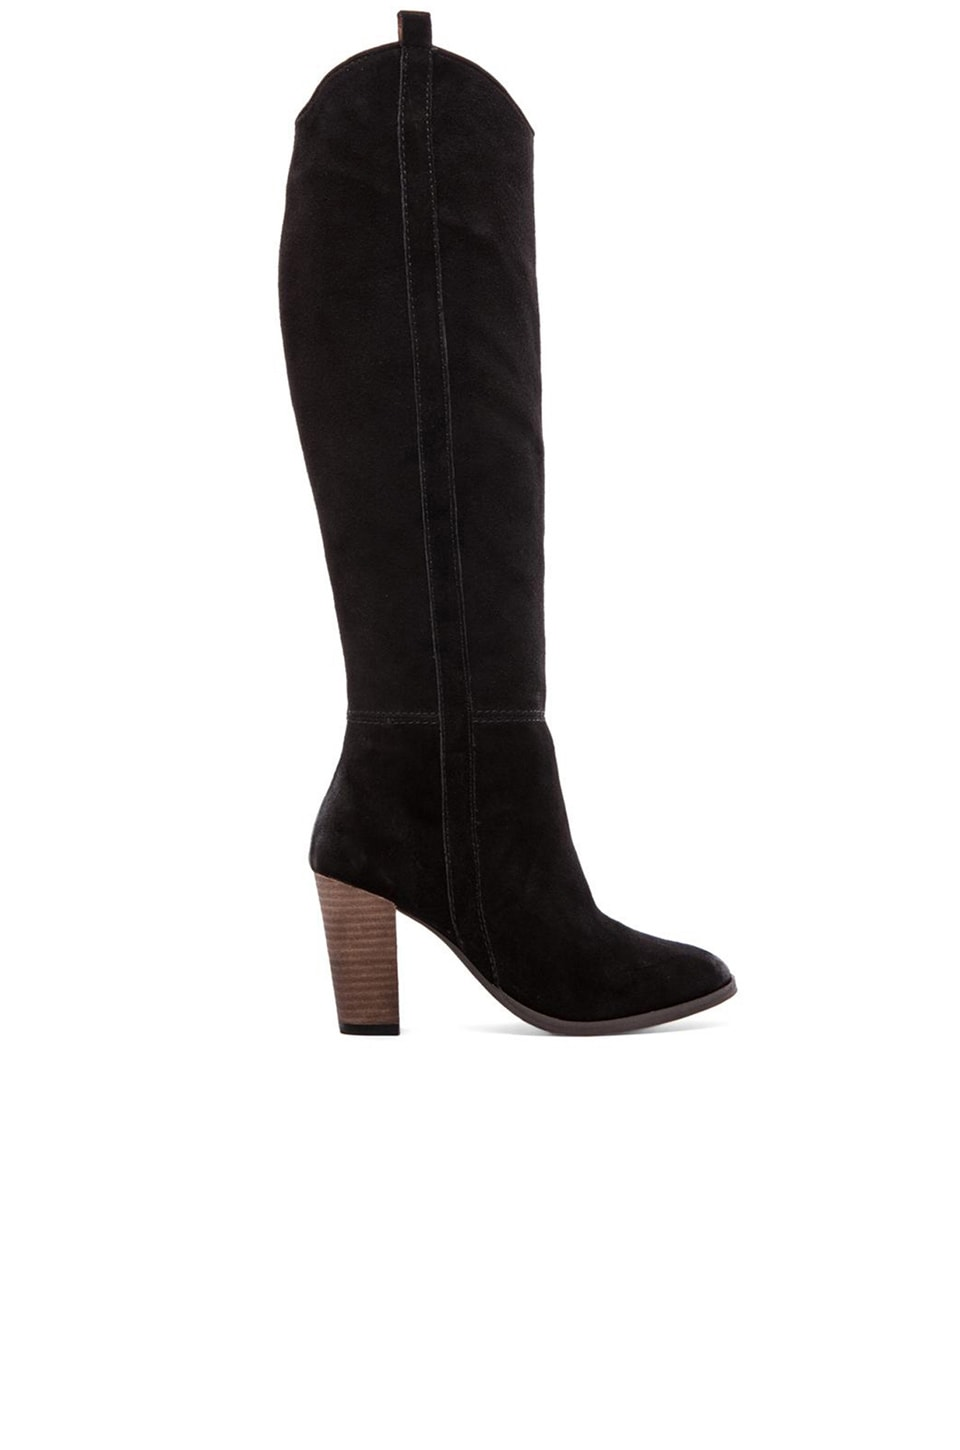 Dolce Vita Myste Boot in Black